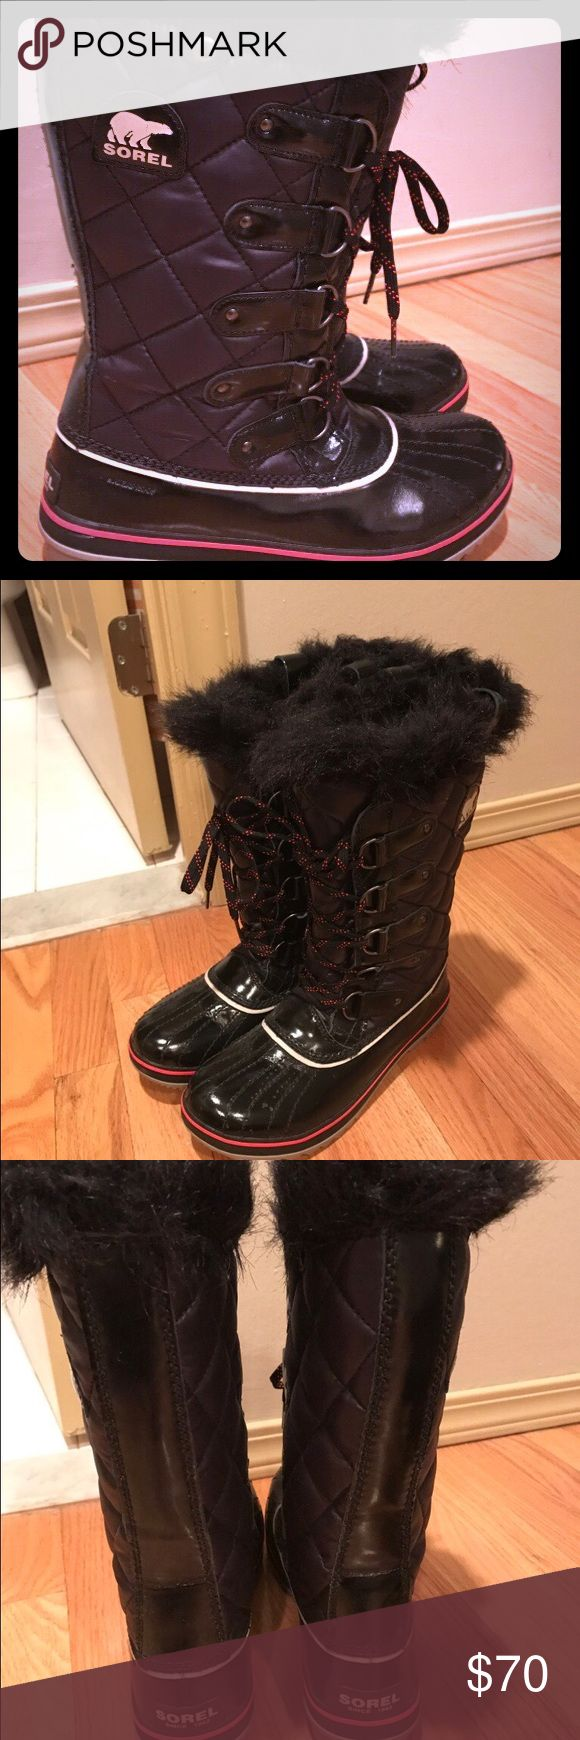 Sorel Boots Sorel snow boots in great condition, only worn once!! Sorel Shoes Winter & Rain Boots